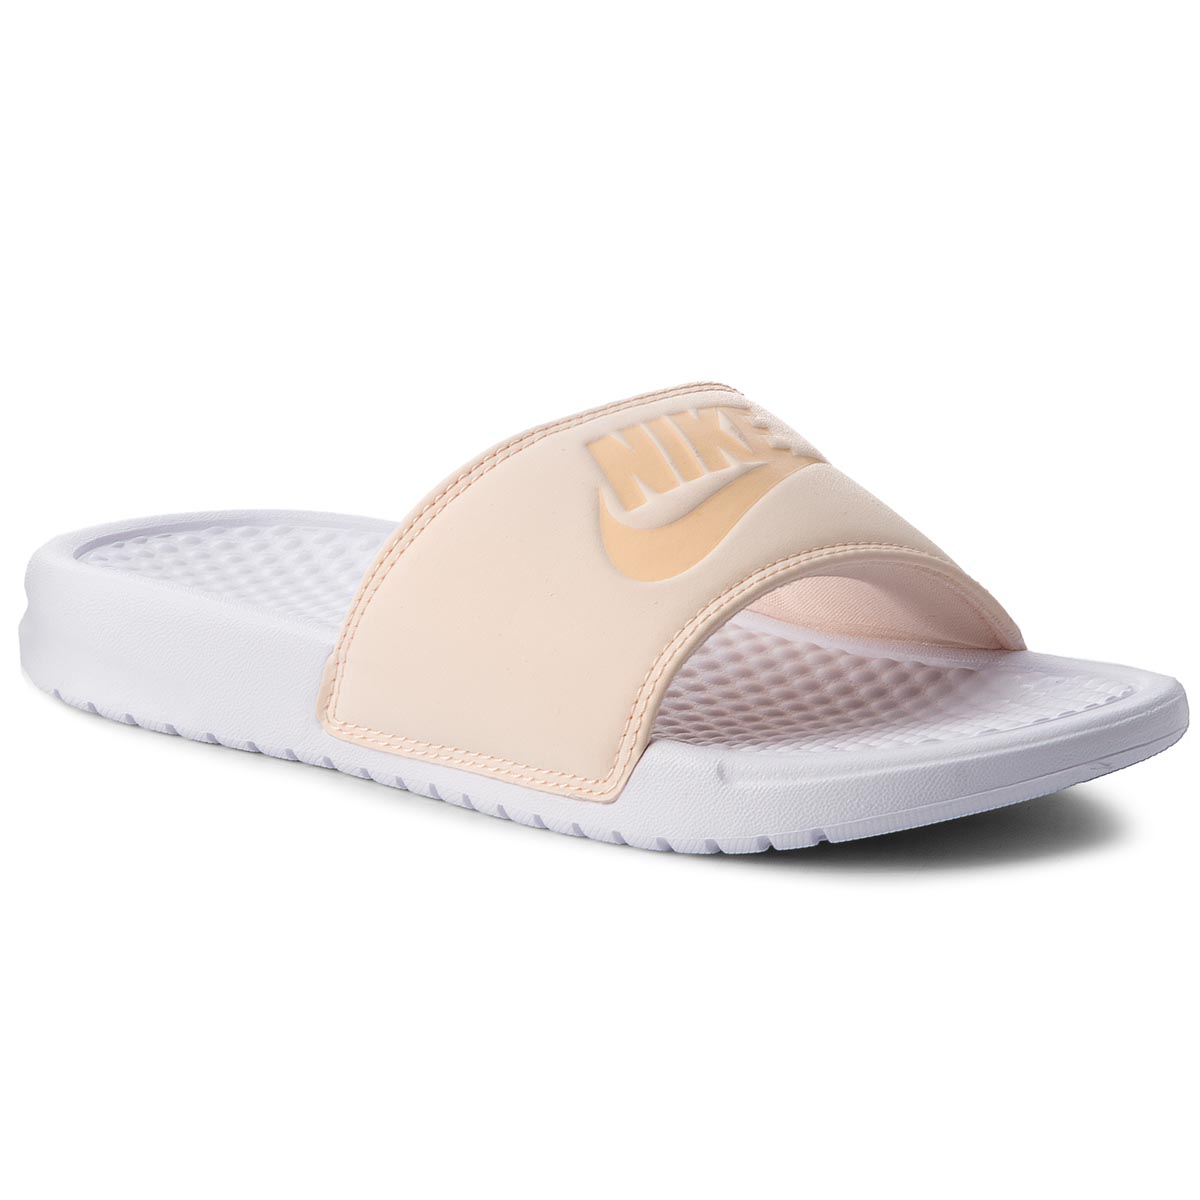 Klapki NIKE - Benassi Jdi Pastel Qs AA4150 800 Orange Quartz/Ice Peach/White